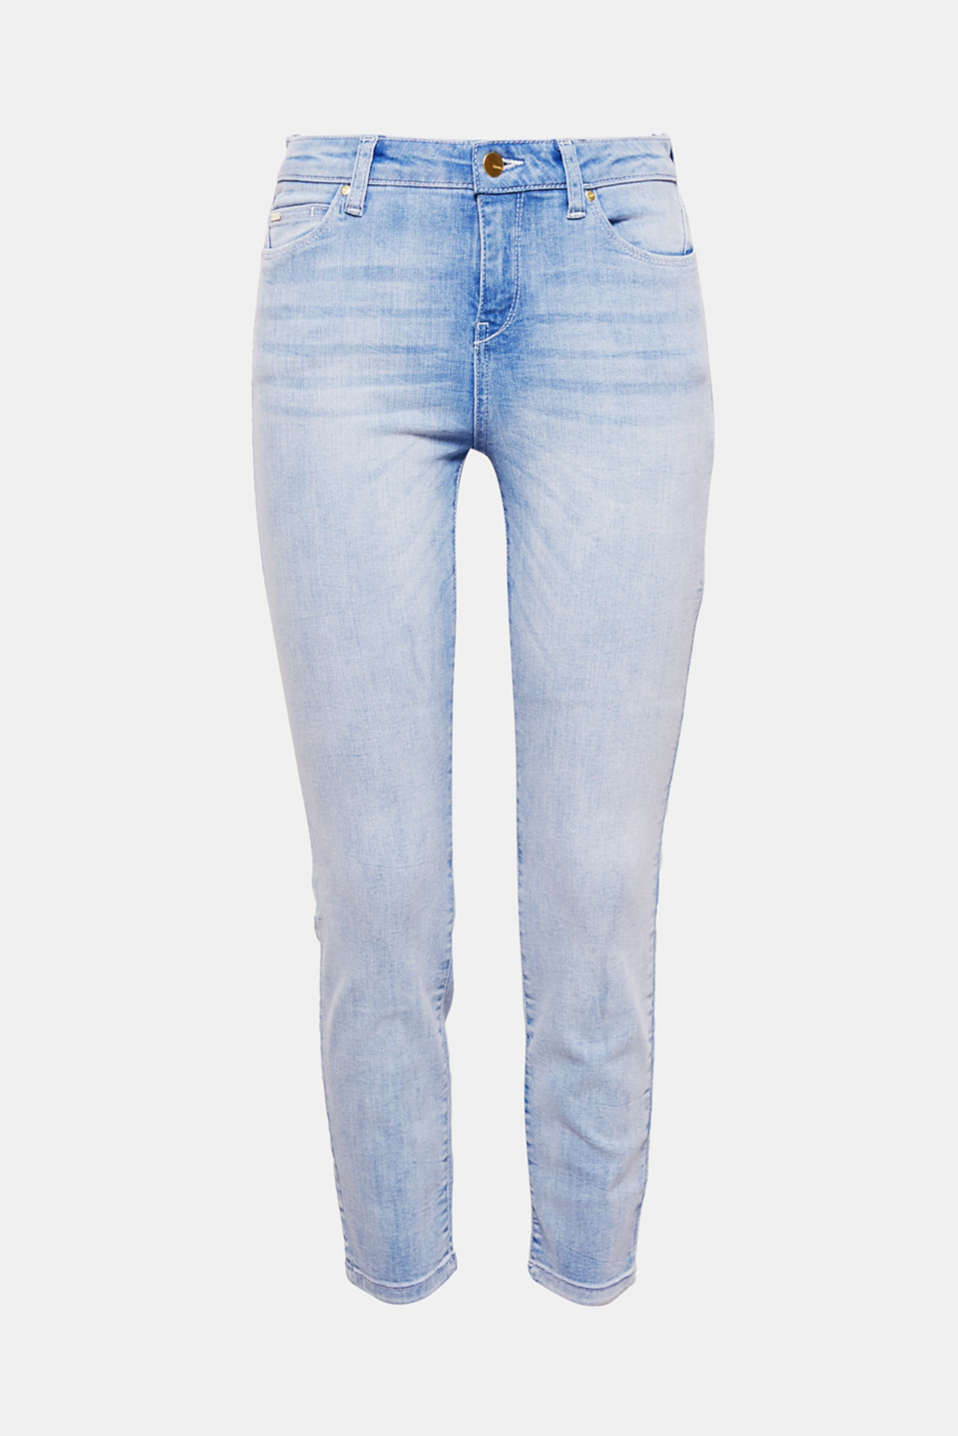 The cropped length and pale, bleached denim give these stretch jeans their summery flair!